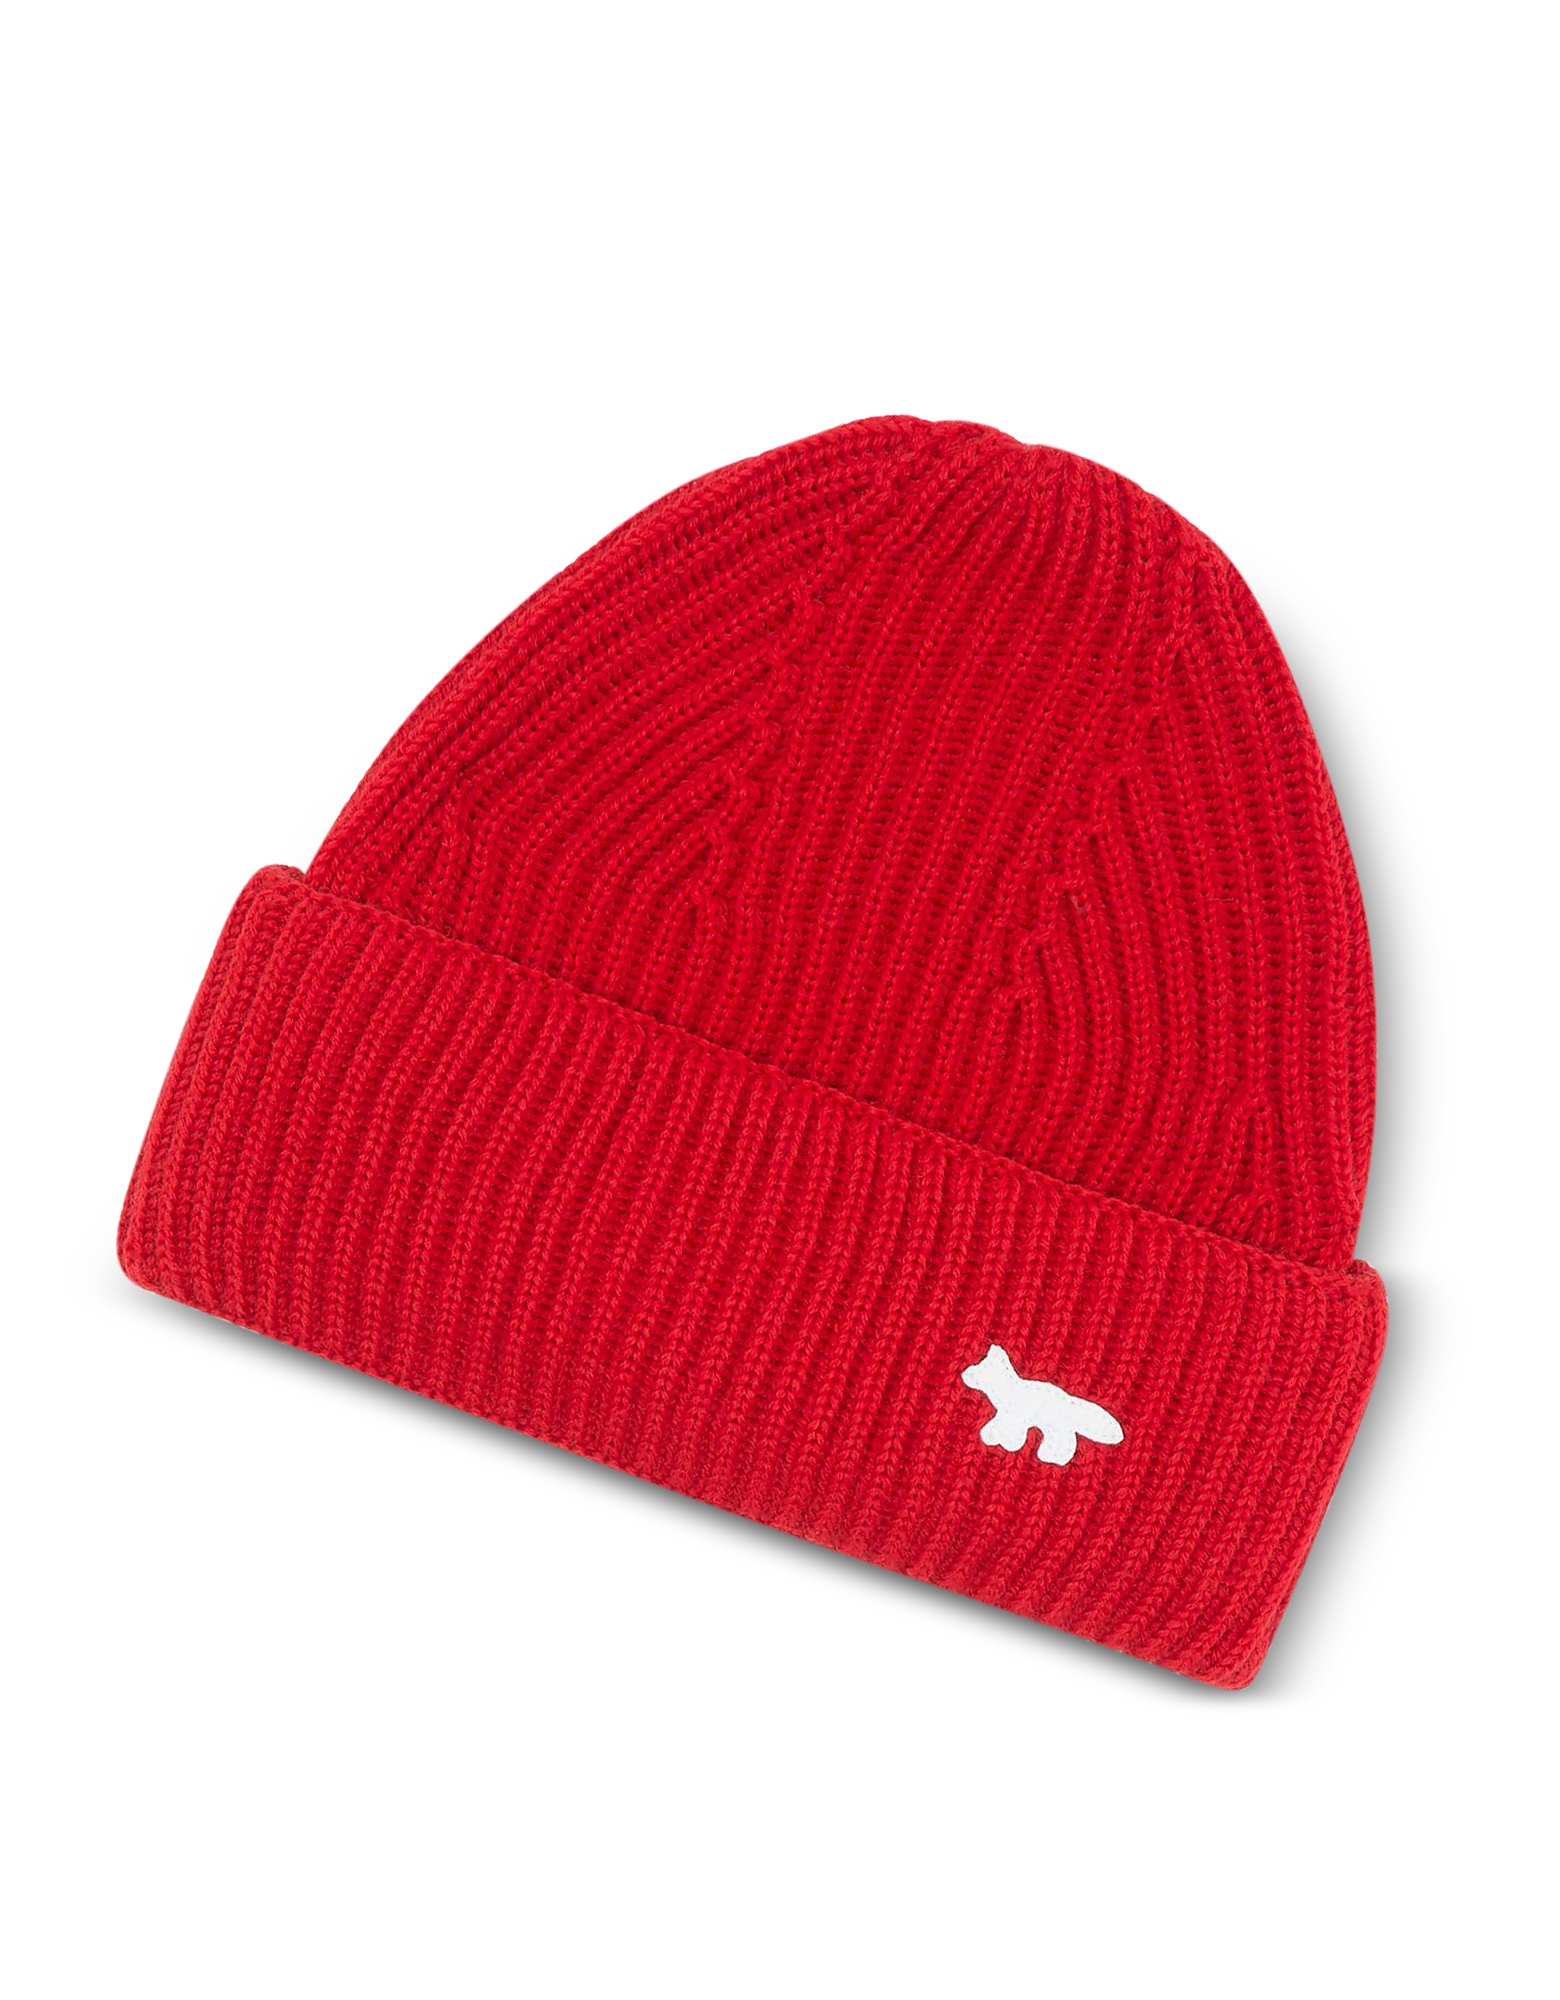 Maison Kitsuné Men's Hats, Red Wool Knitted Hat